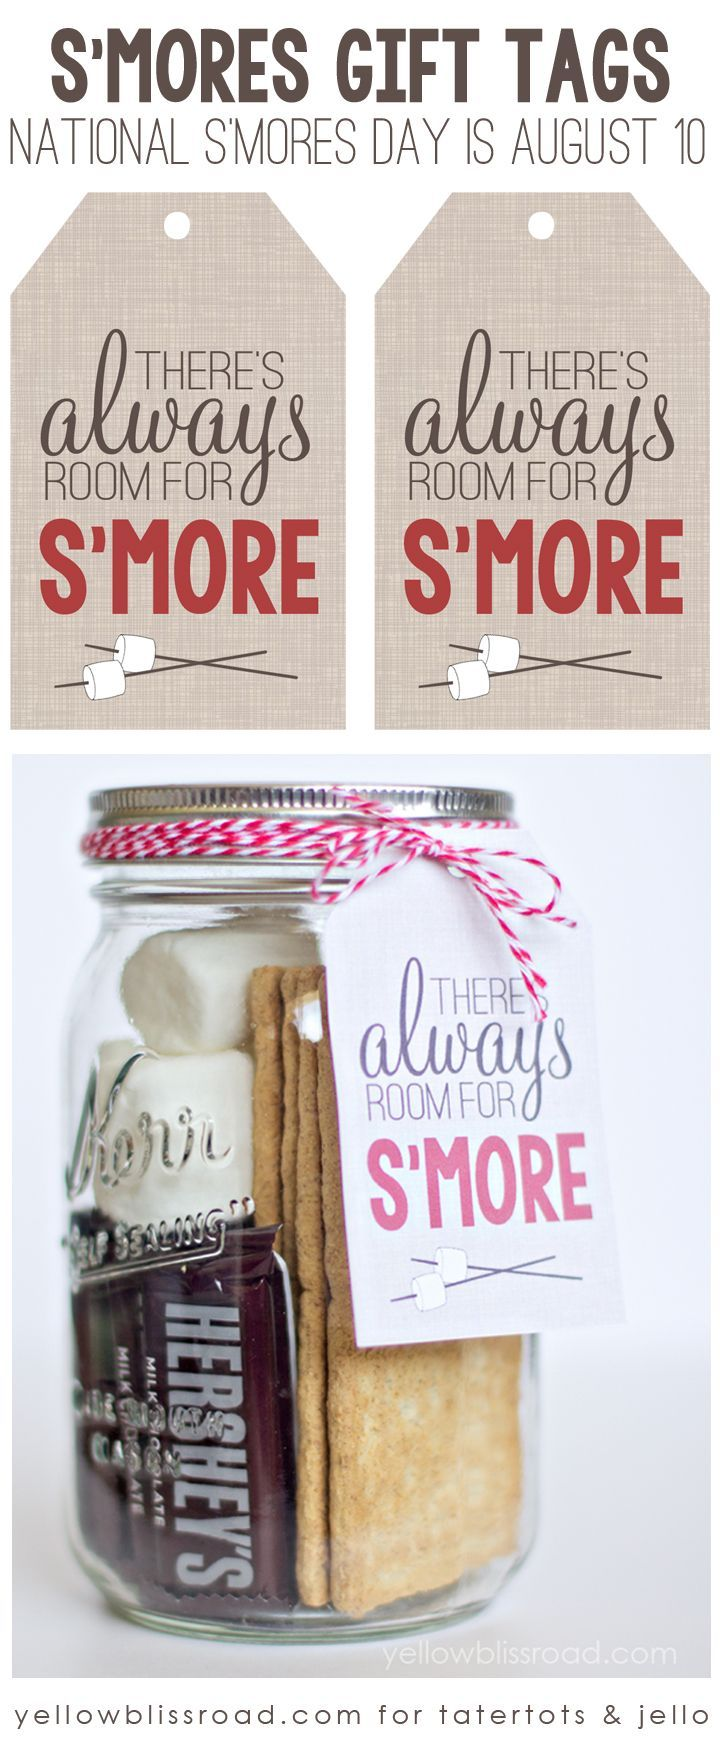 """""""There's always room for S'more"""" Free printable gift tag! Perfect for National S'Mores Day August 10!"""